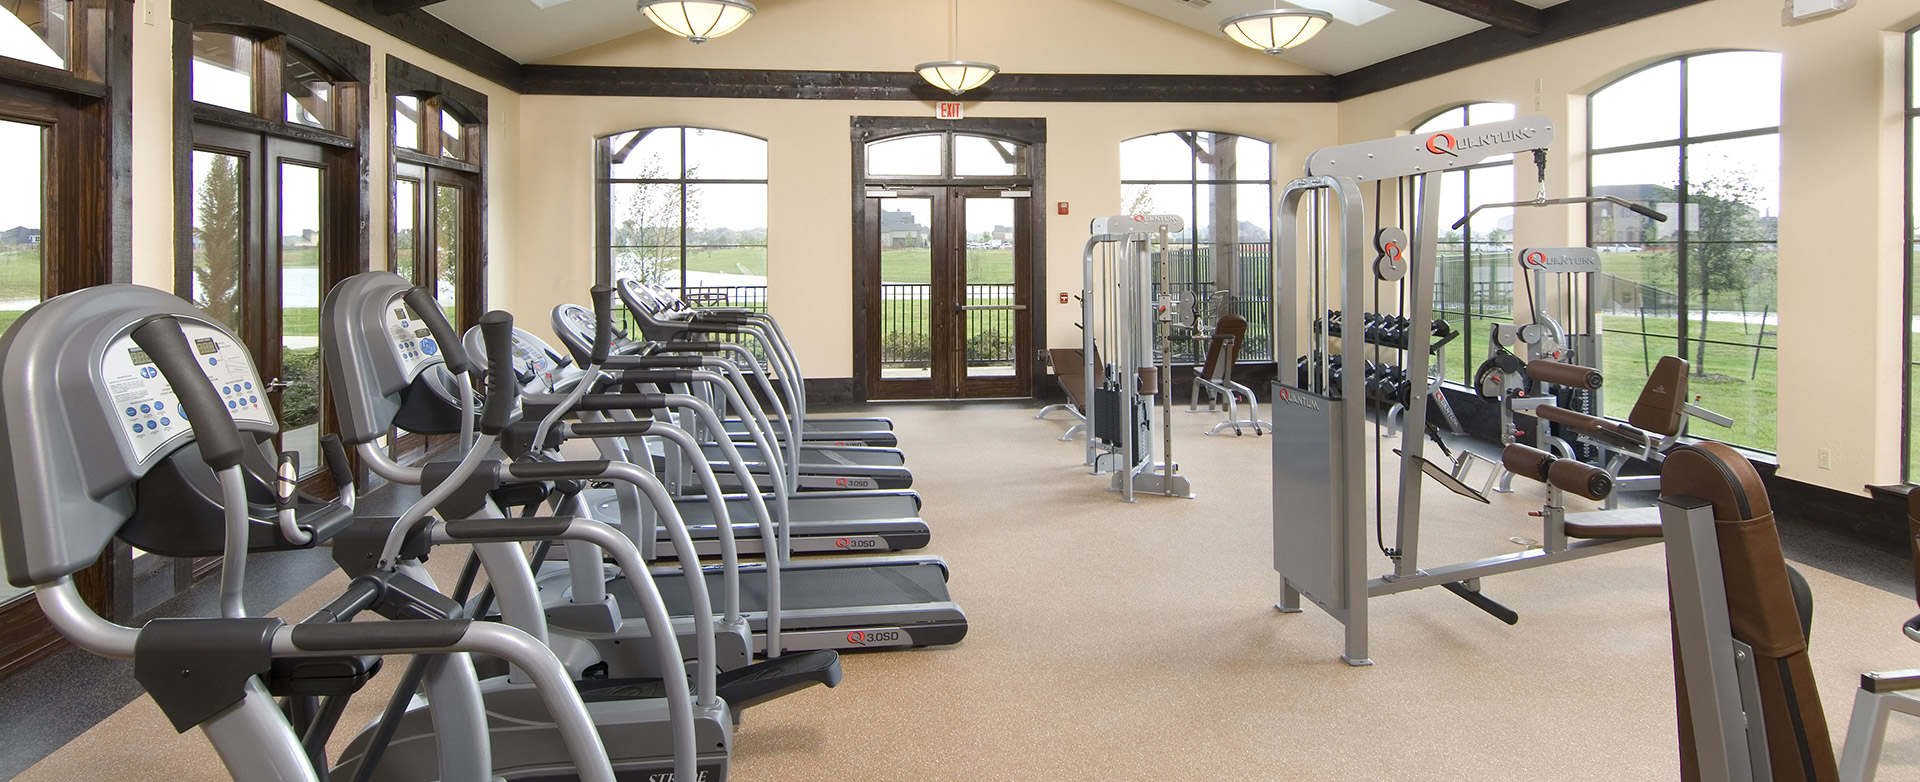 Make it happen in our Fitness Center in our new home commiunity facilities in Richmond, TX